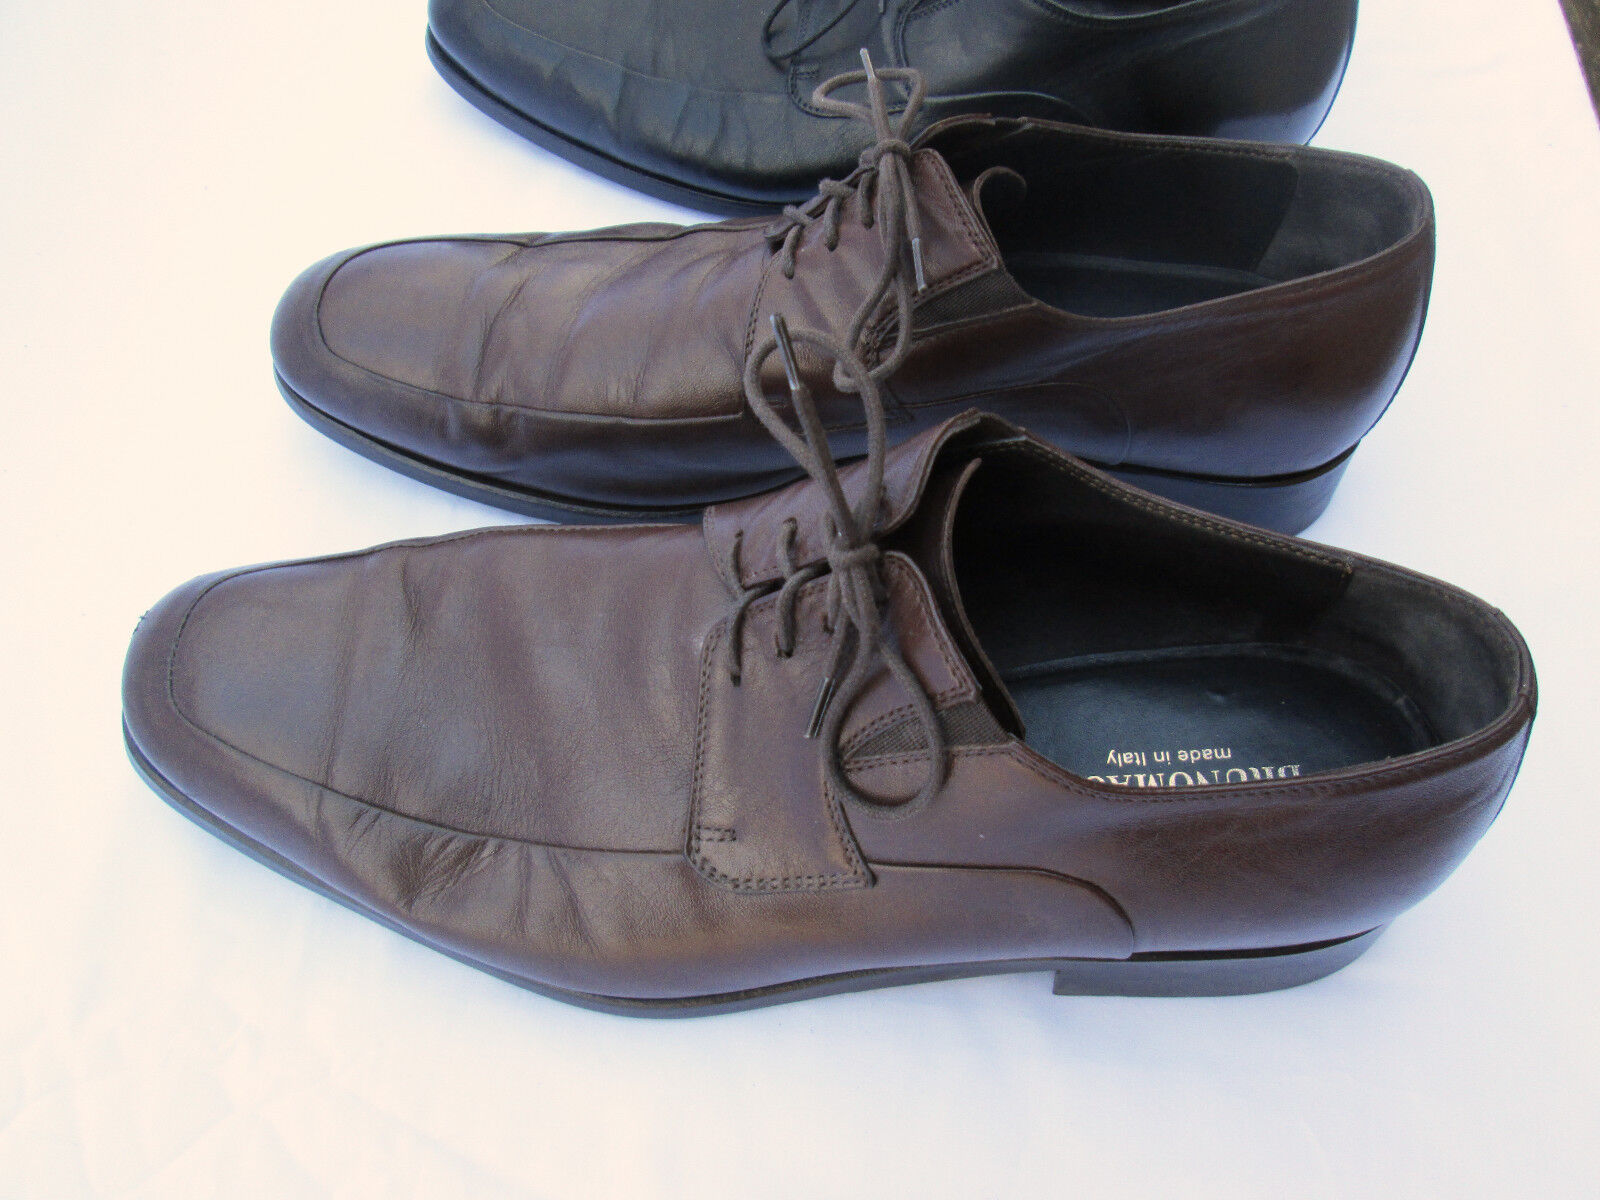 BRUNO BRUNO BRUNO MAGLI 10.5M Rammola Brown AND Black Dress Shoes! Choose One Pair or Both! 7e4769